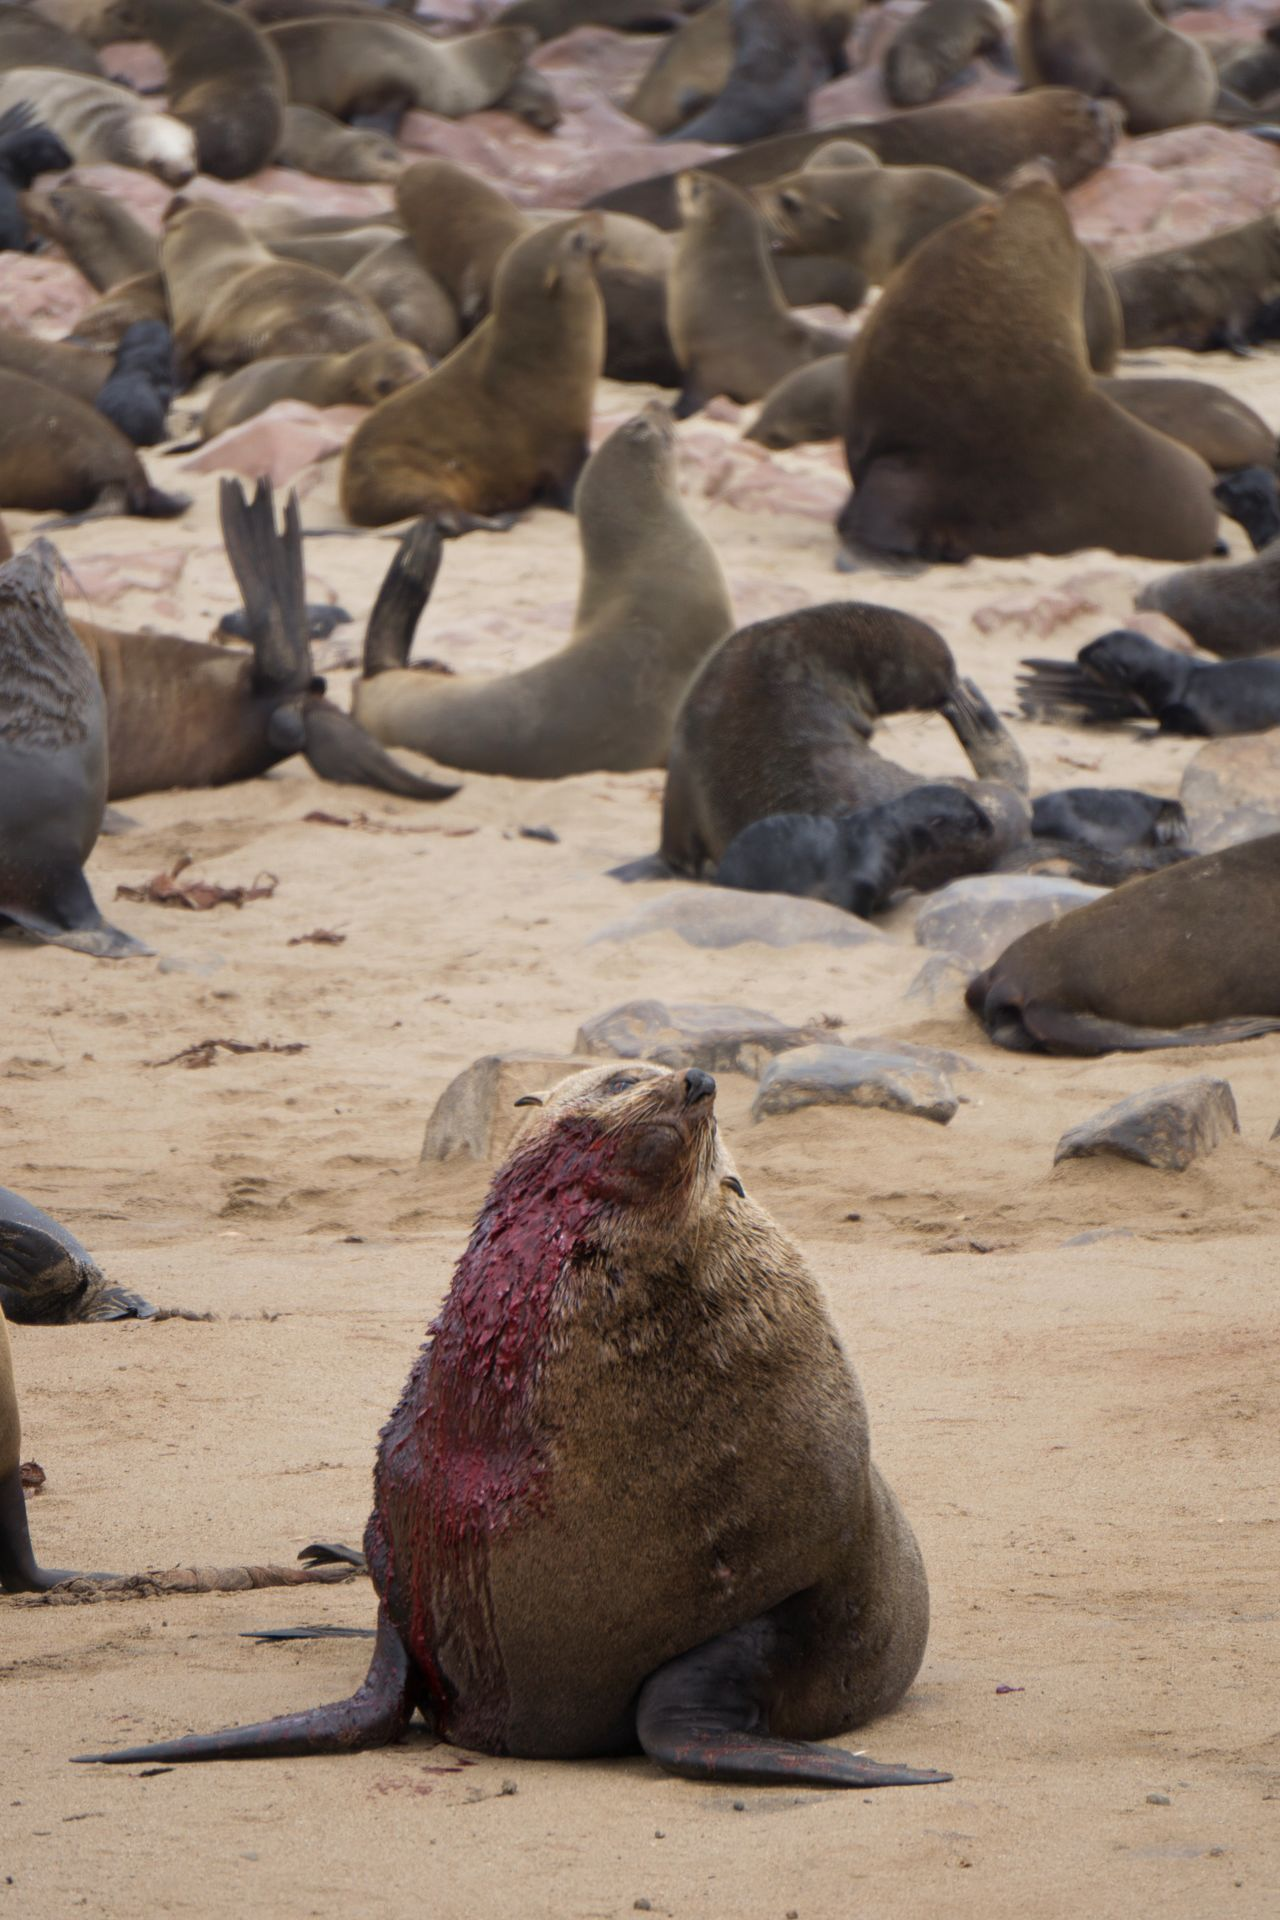 Seal Colony in Namibia Animal Wildlife Mammal Animal Beach Animals In The Wild Sand Nature No People Outdoors Aquatic Mammal Day Animal Themes Close-up Seal Seals On Beach Seals Chilling Seals In The Suns Seals Namibia Seals Playing Pain Hurt Blood Sealsanctuary